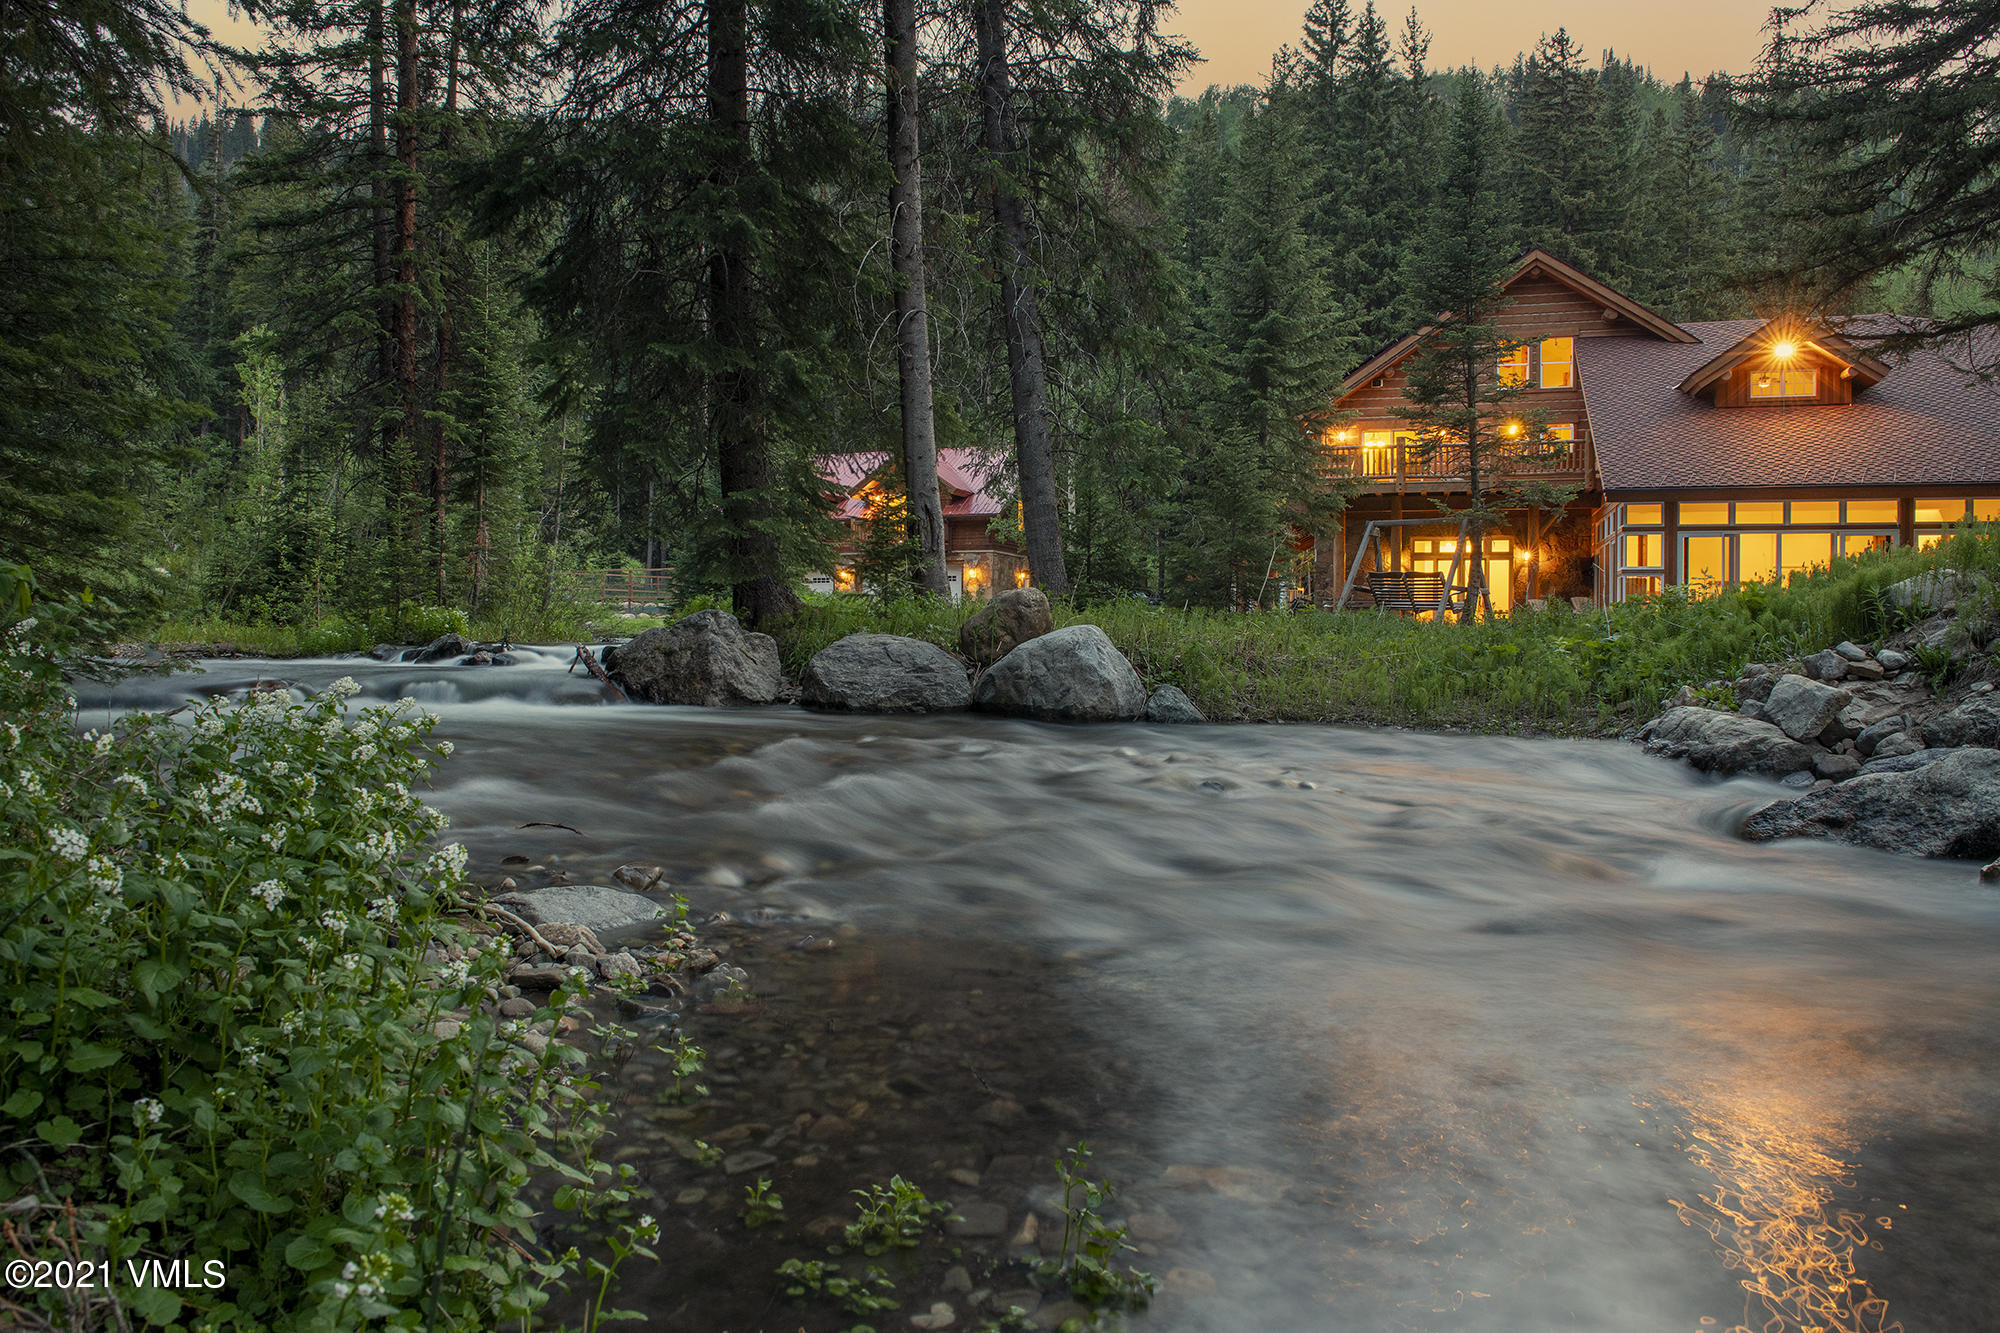 If a custom built creekside home with absolute privacy, acreage, convenience, water-rights, views and direct National Forest access has been a dream, then this property is that reality. This legacy estate is minutes from Vail and Beaver Creek and offers your own personal Colorado mountain playground. Hike, ski, snowshoe, ride horses or snowmobile on a trail system already in place. If 40 acres isn't enough, then being bordered by National Forest with over 100,000 immediately accessible acres will quench your adventurous thirst. The main home was finished in 2010 and features impeccable craftsmanship, finishes and creekside views where one can relax in absolute peace and privacy knowing you never need to lower your window shades. A separate guest building with additional 4-car garage, apartment and studio provide overflow for guests, caretakers and mountain toys. Grow your own vegetables in the fenced-in and mature garden, ride horses in the riding arena with tack barn and store additional mountain toys or machinery in the overflow out-buildings. All the hard work creating this estate is complete and ready for your immediate enjoyment. The connected neighboring parcel to the south, 801 Holy Cross Drive, is also for sale, creating a once in a lifetime opportunity to control 120 acres of pristine and private creekside land. This parcel is also bordered by National Forest and is zoned resource, with no HOA or Design Review Board, allowing for a multitude of design and building opportunities. http://www.HolyCrossRanch.com/?mls